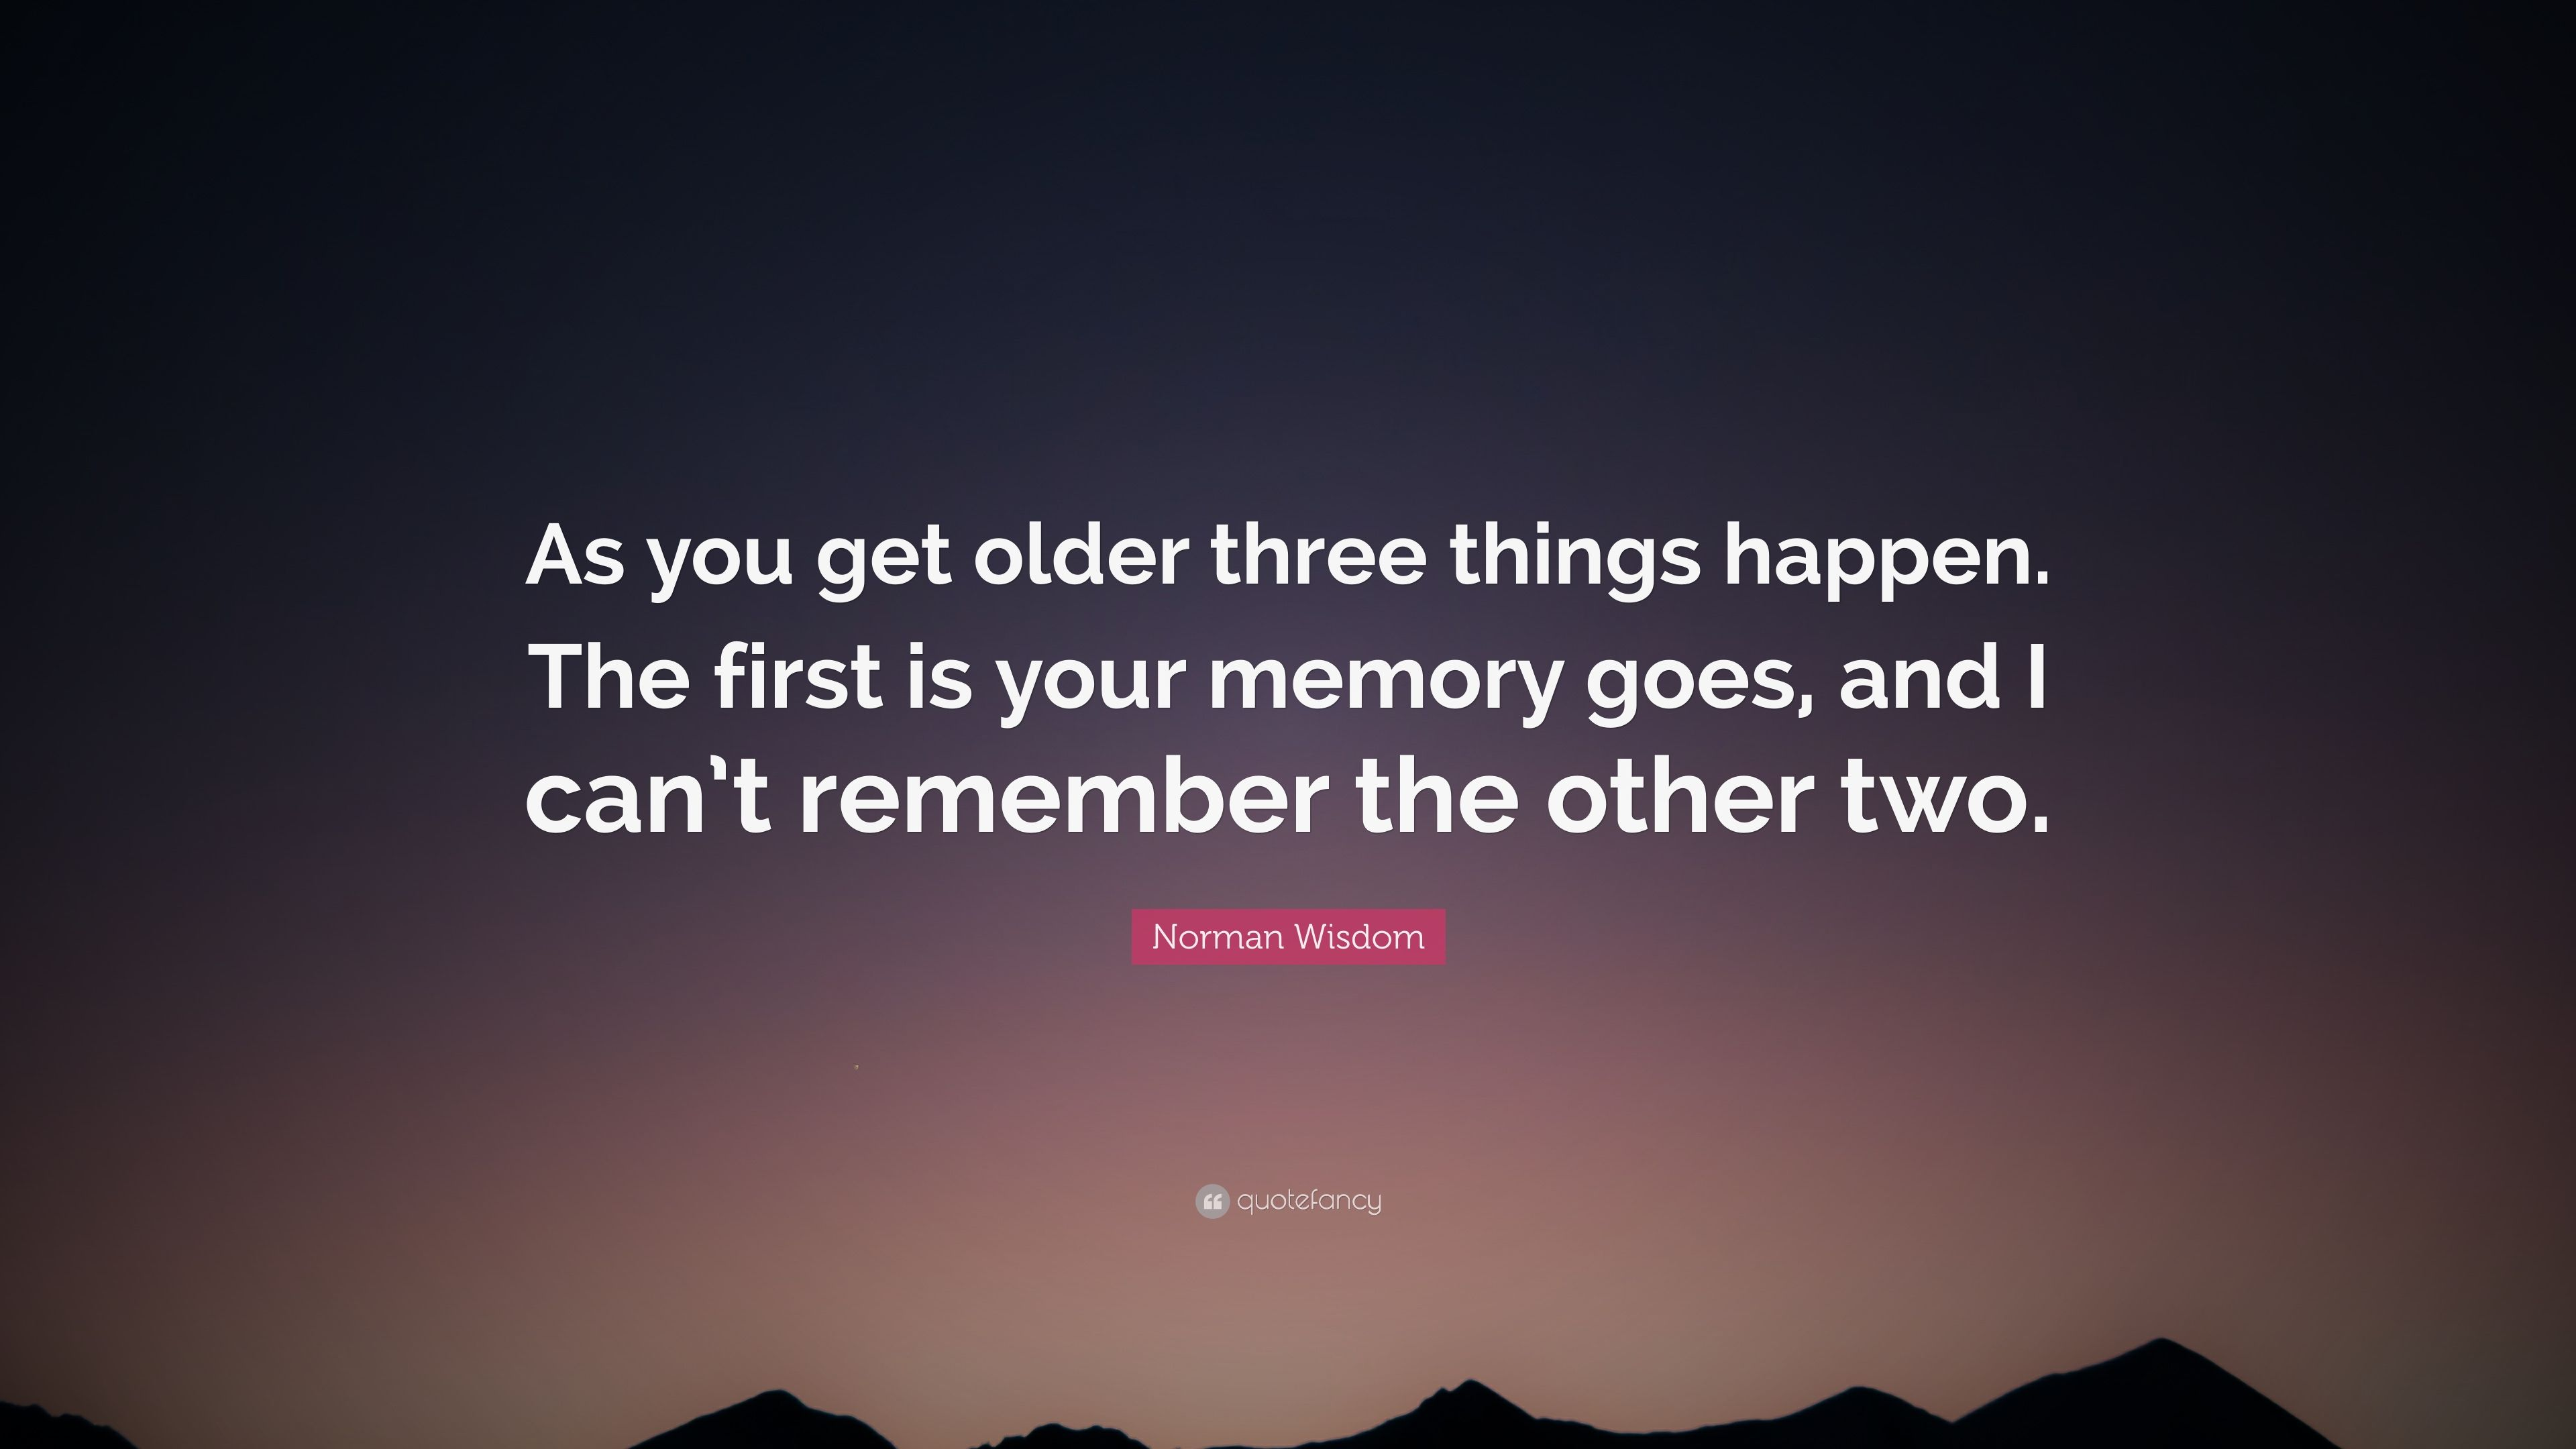 Norman Wisdom Quote: U201cAs You Get Older Three Things Happen. The First Is